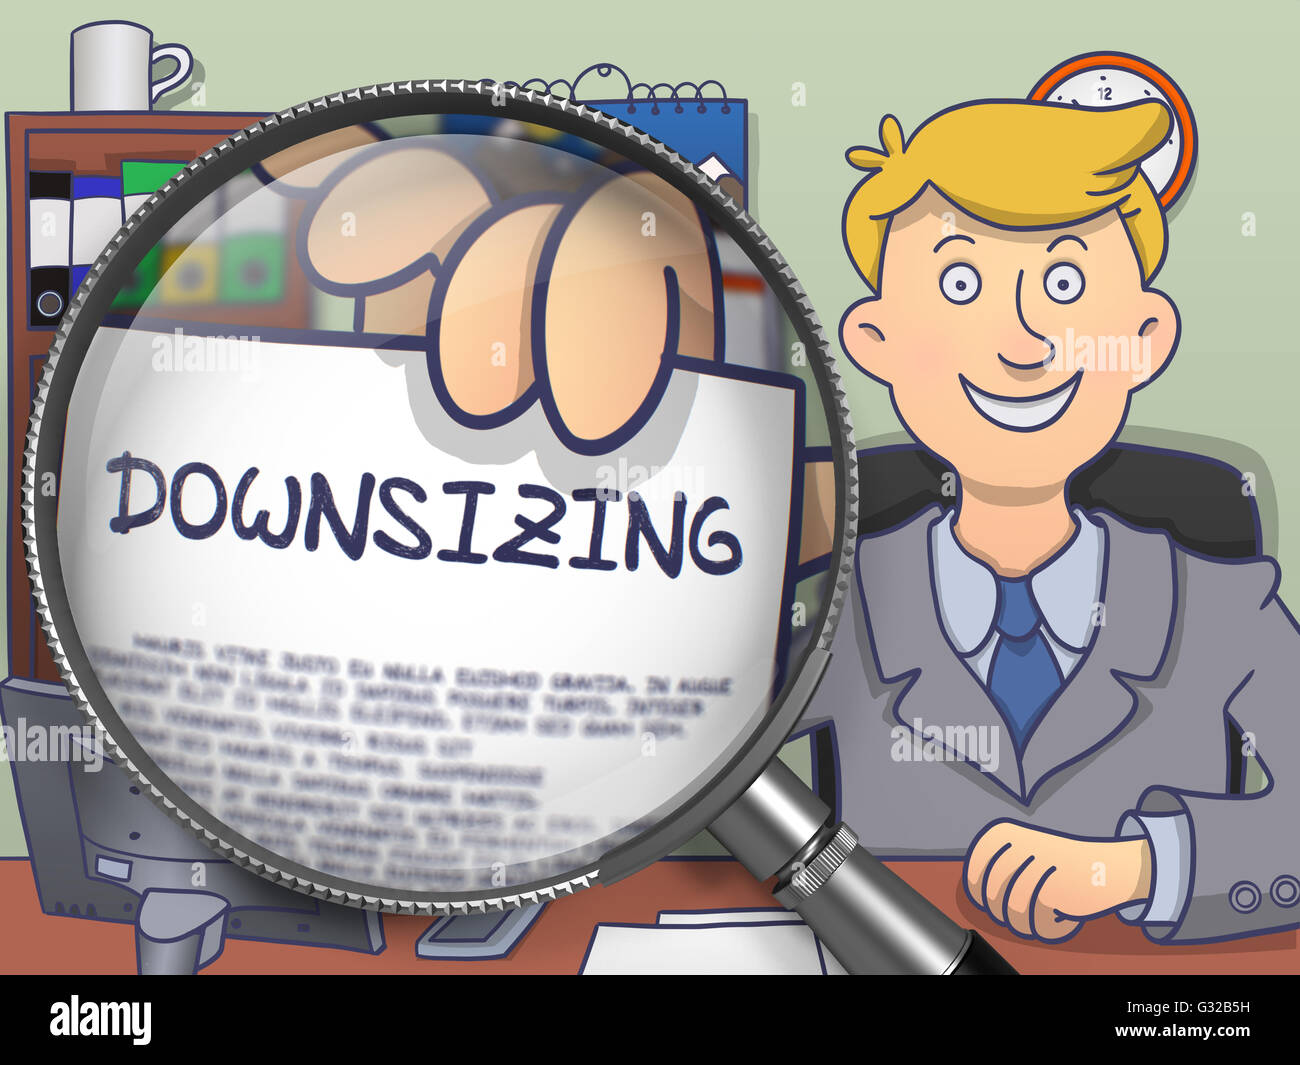 Downsizing through Lens. Doodle Concept. - Stock Image